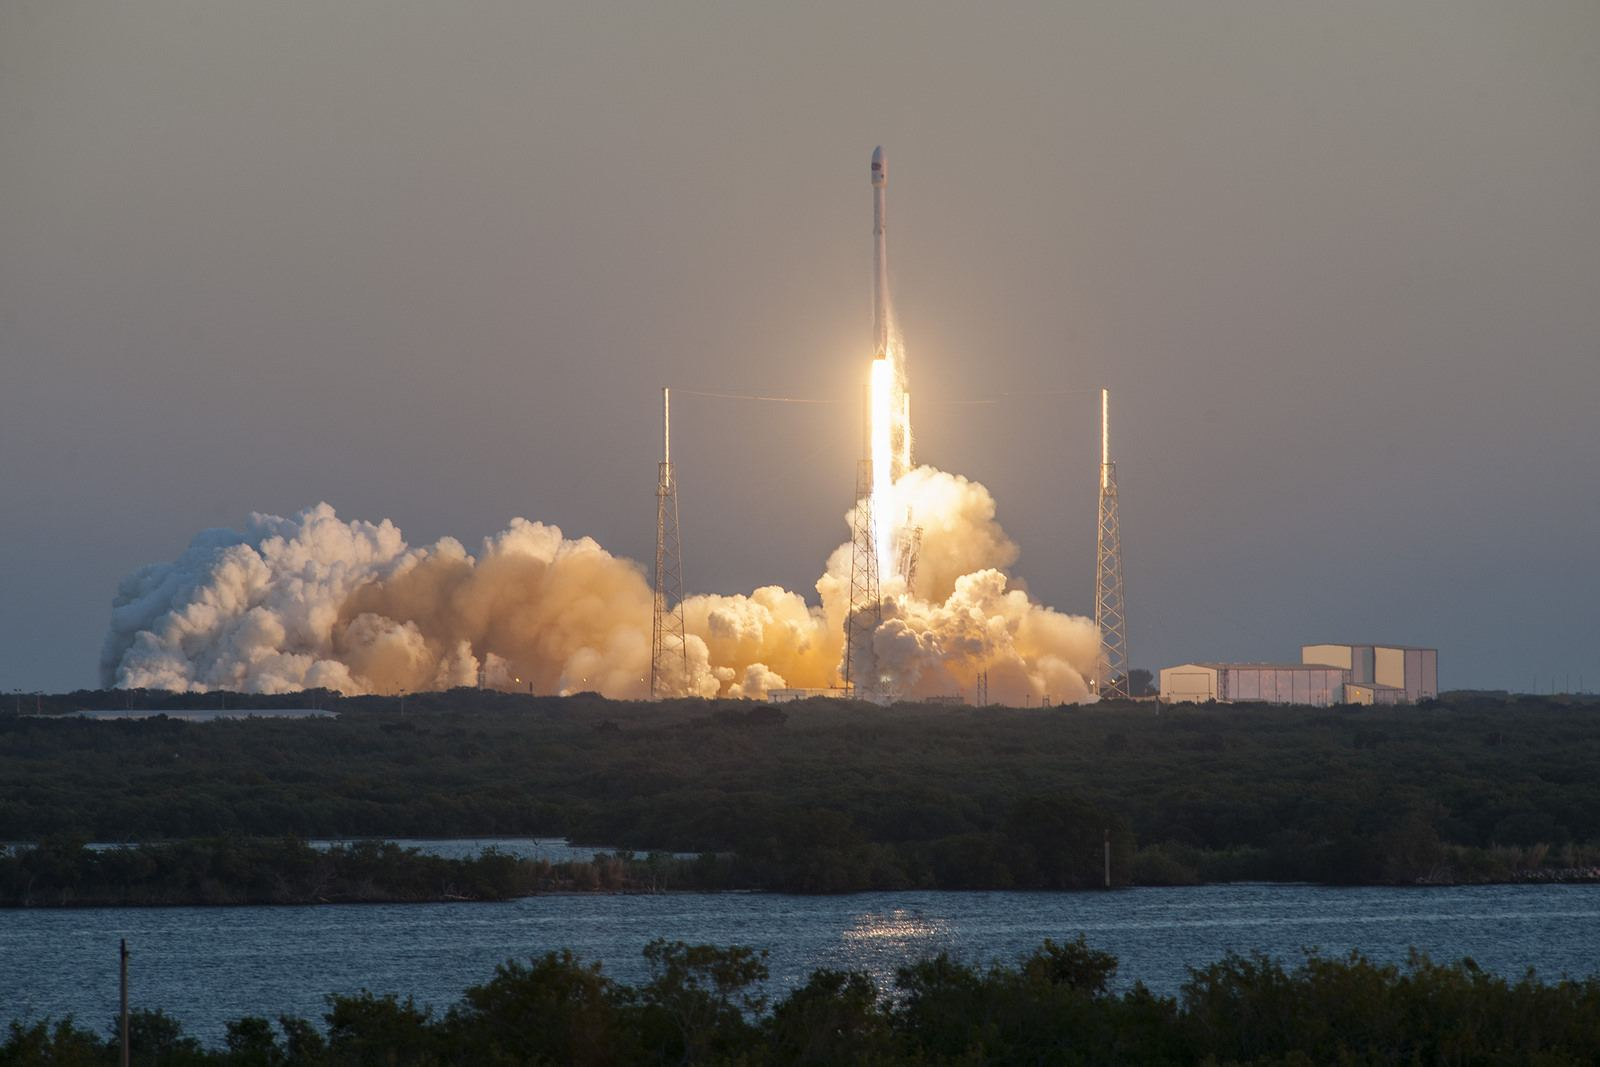 spacex1 Falcon 9 lifted off from SpaceX Launch Complex